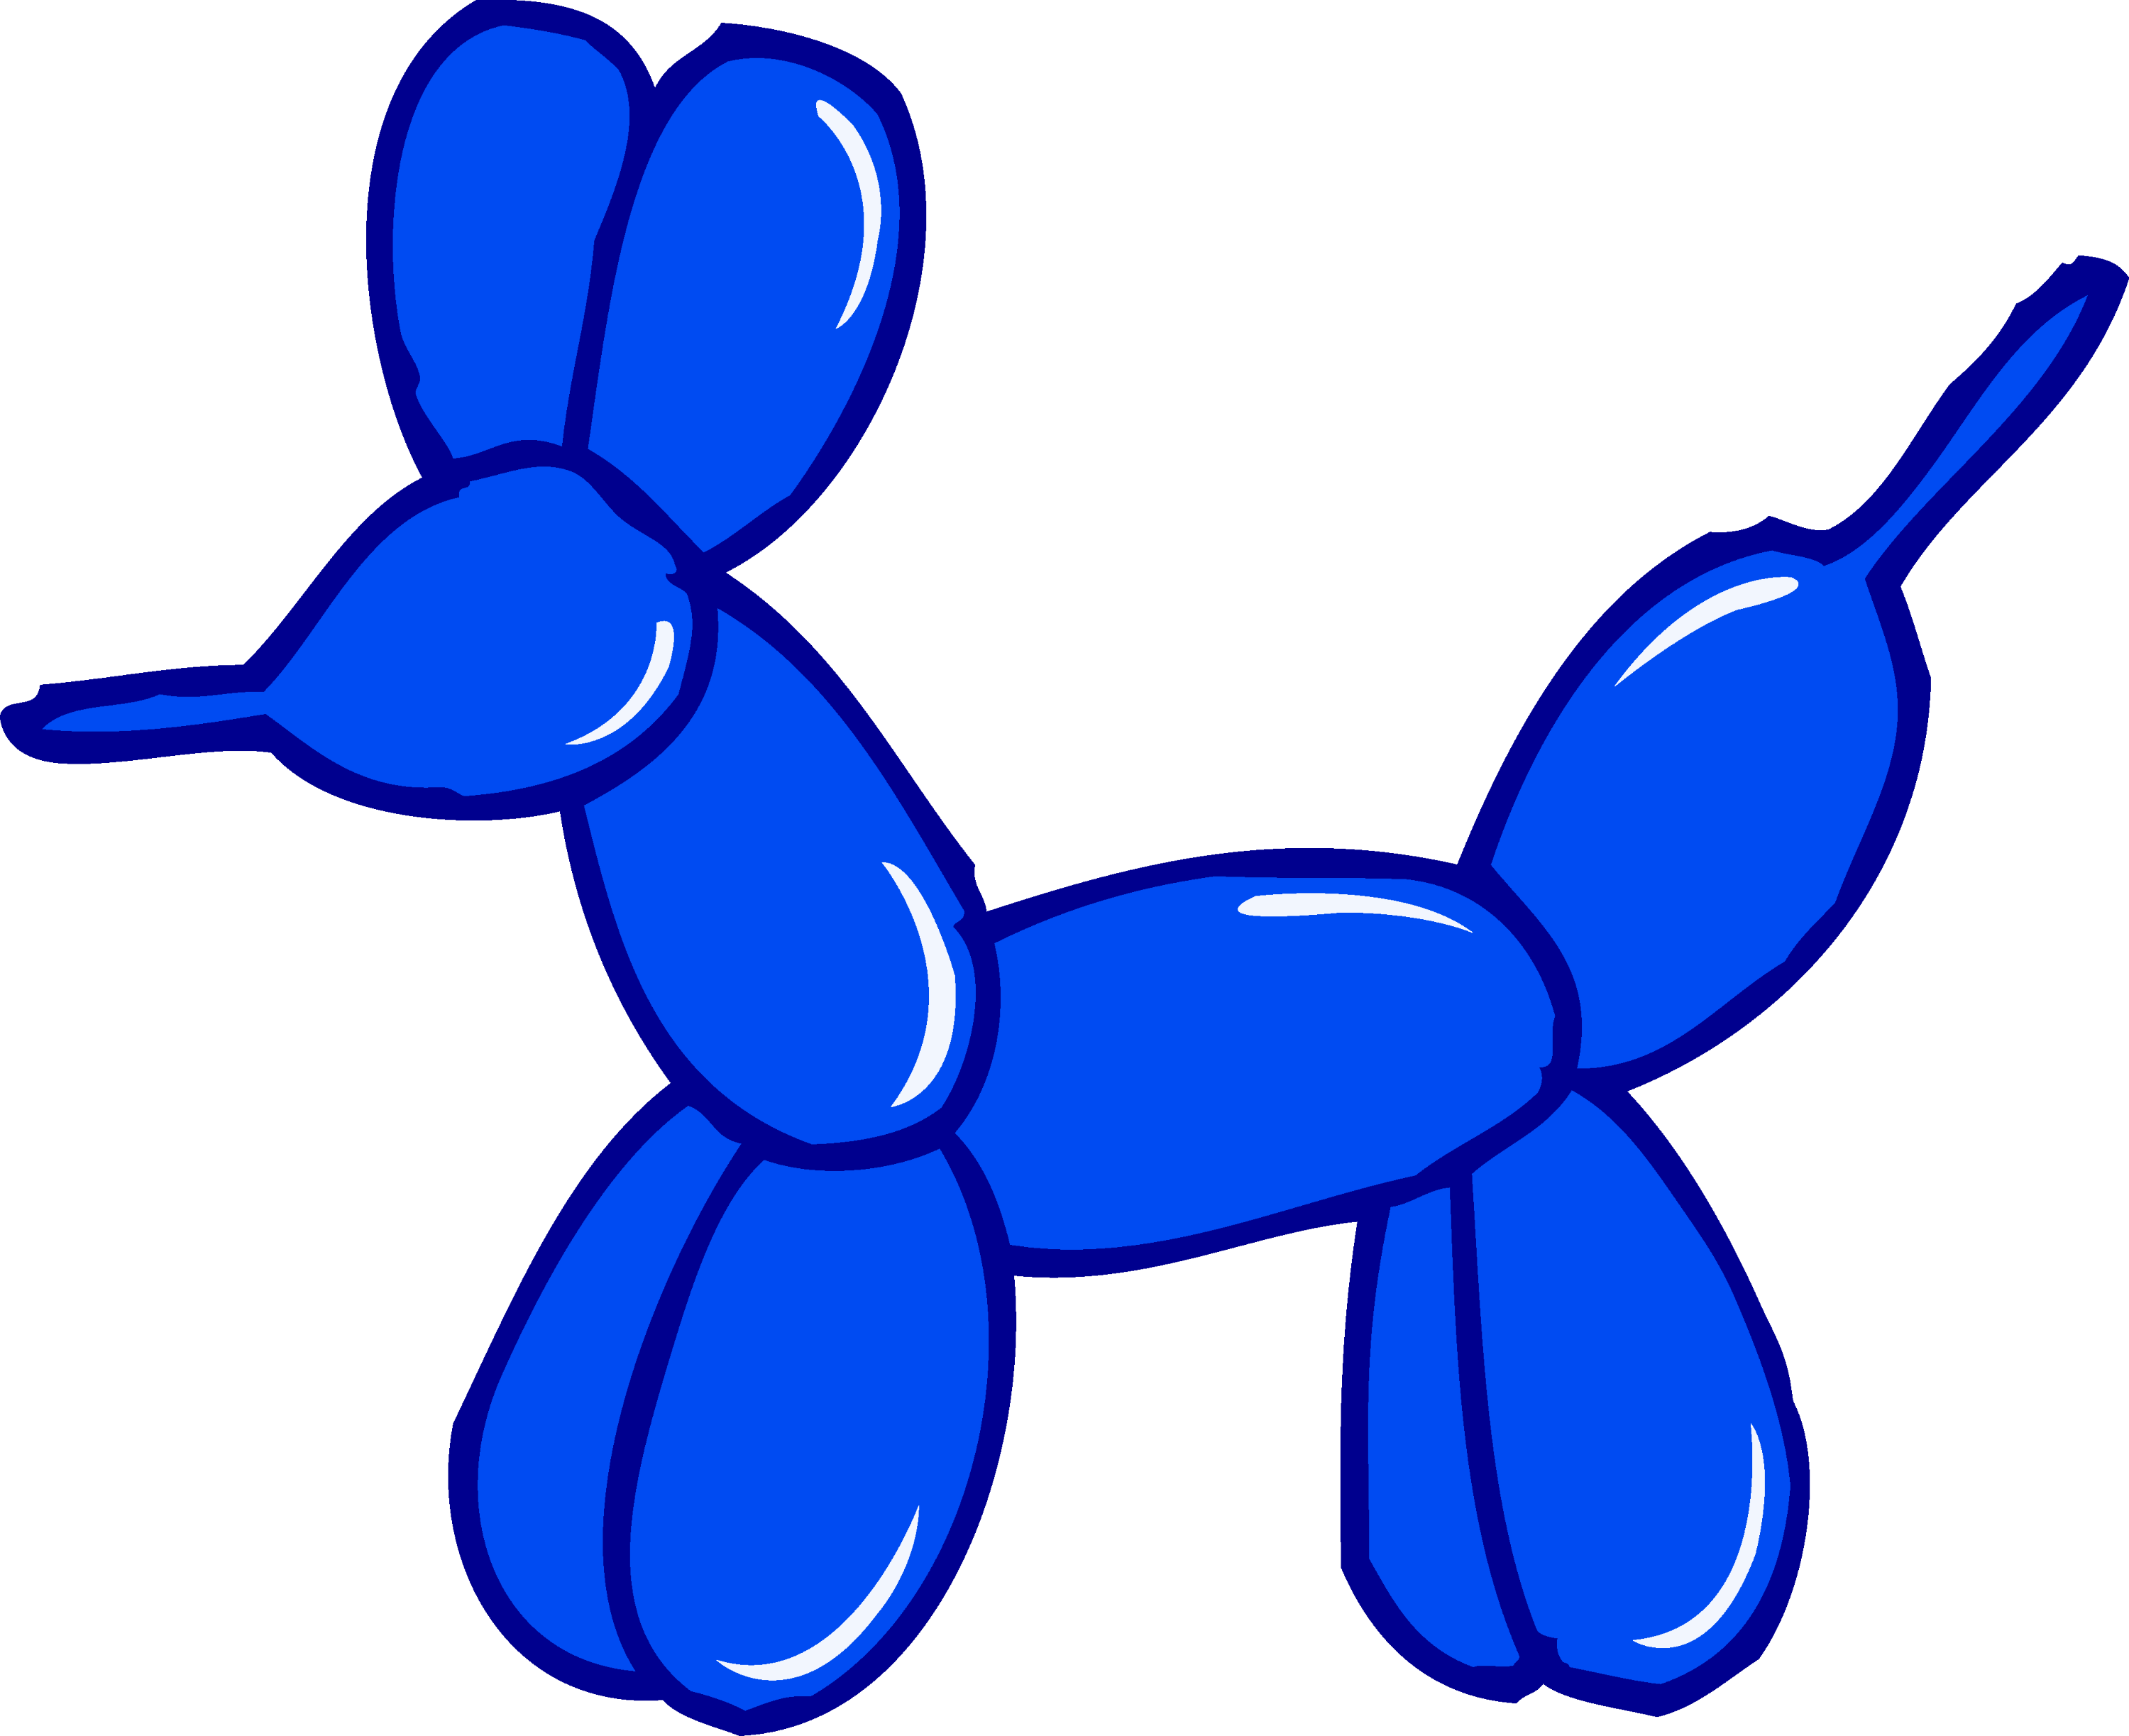 cute blue balloon animal free clip art rh sweetclipart com animals clipart black and white animals clipart black and white